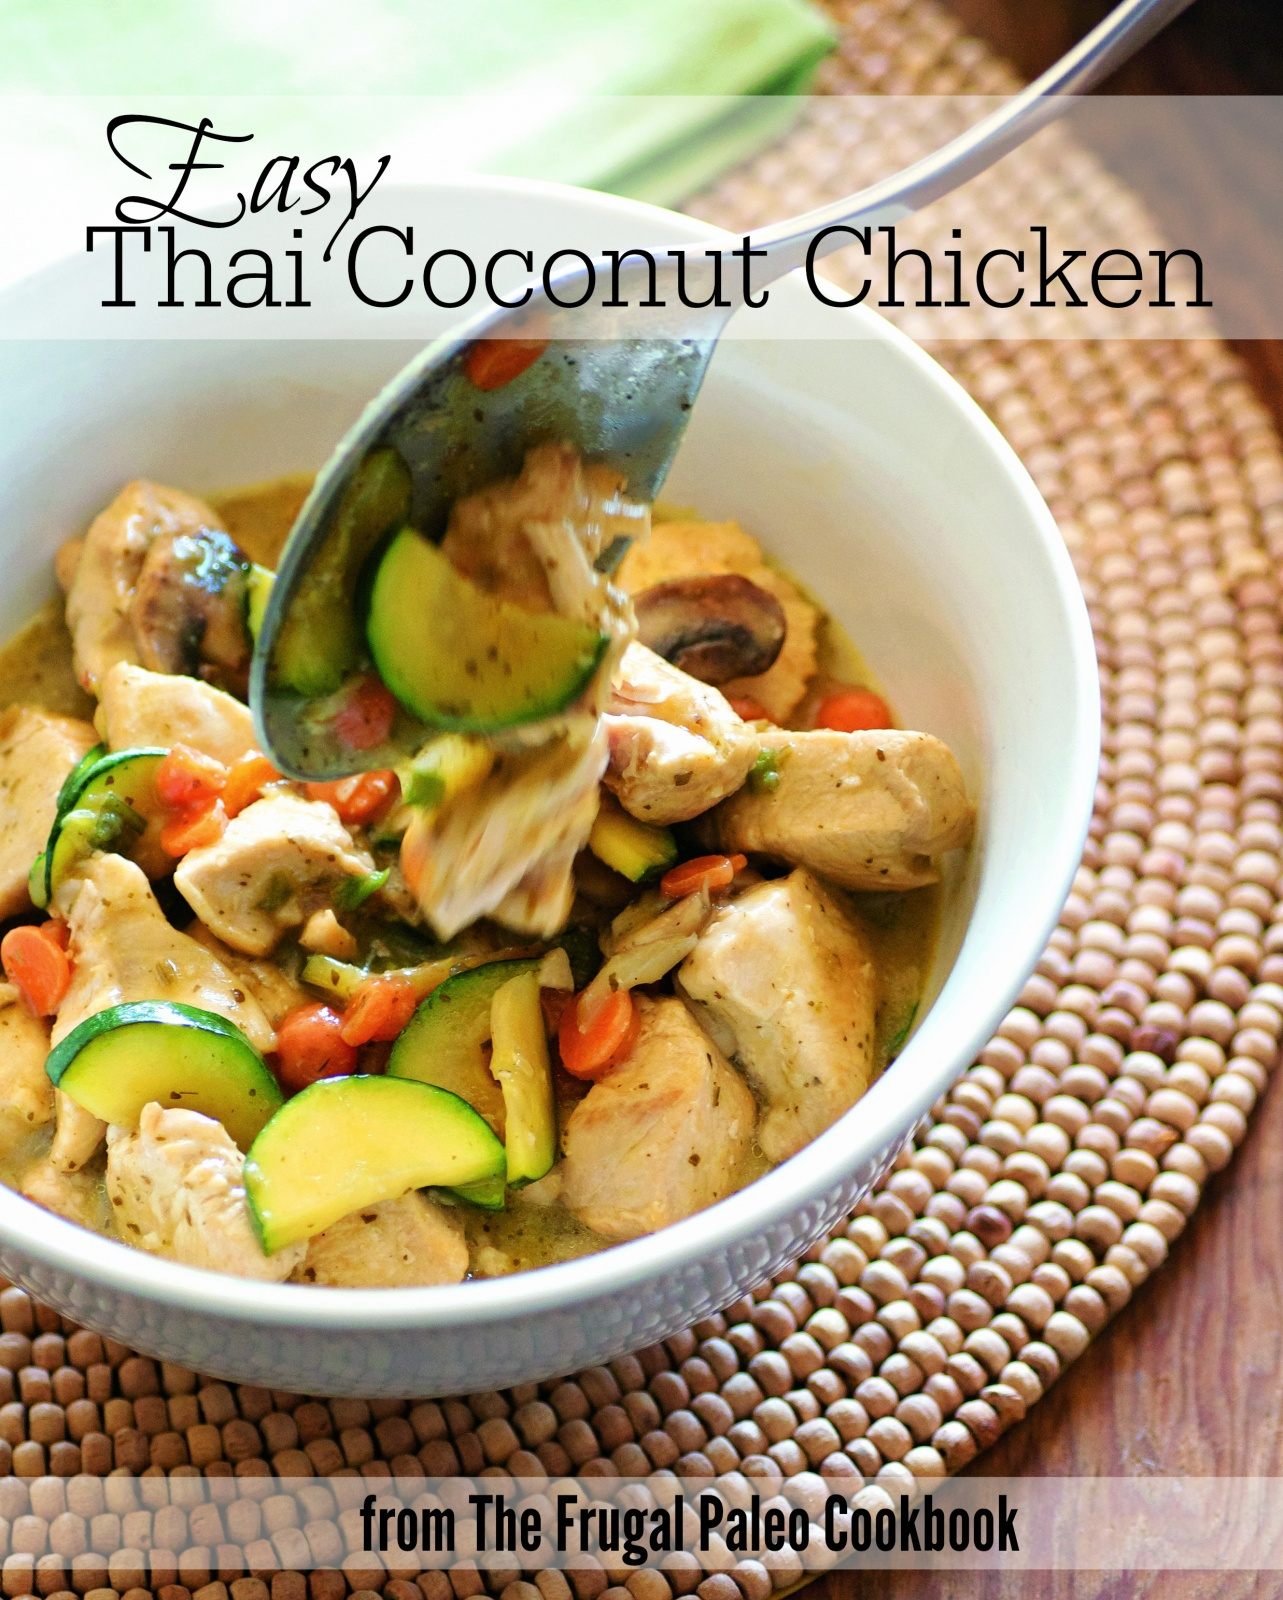 Easy thai coconut chicken from the frugal paleo cookbook zenbelly easy thai coconut chicken from the frugal paleo cookbook forumfinder Gallery